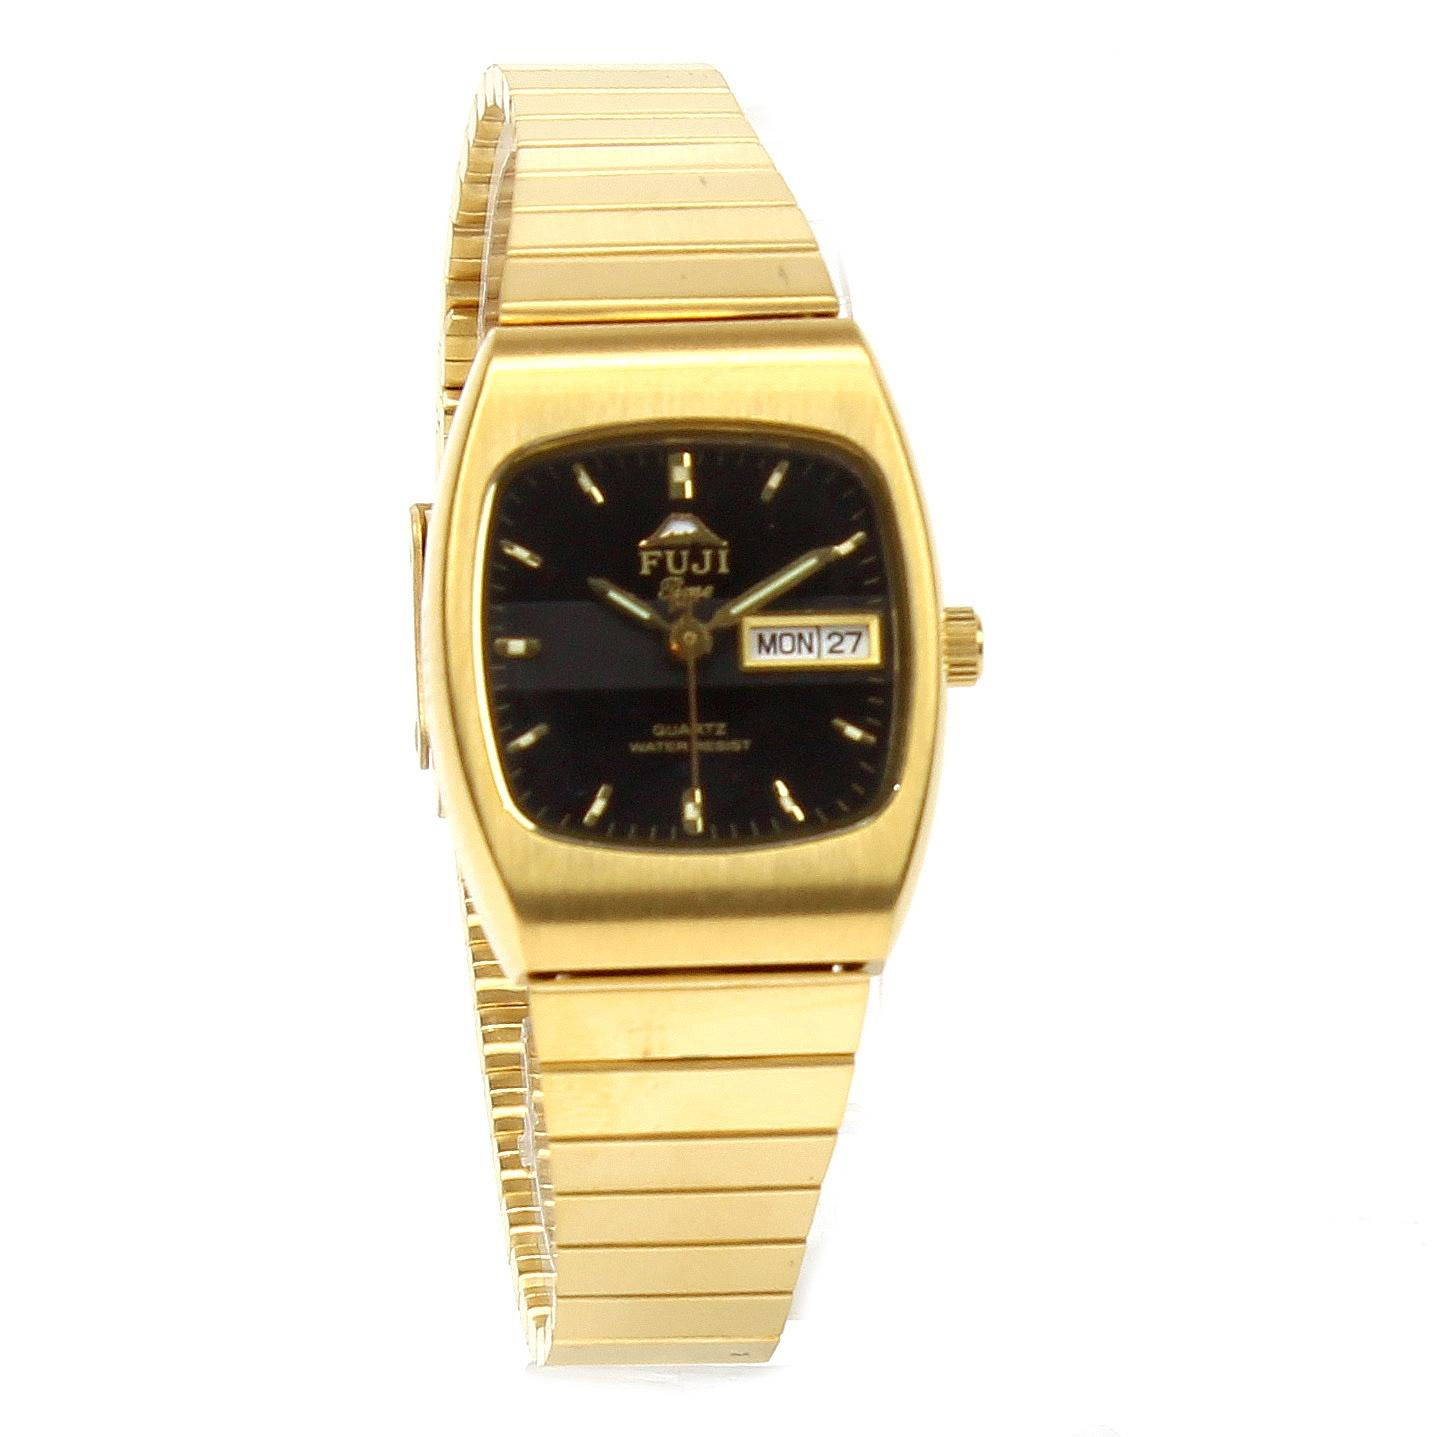 02e8a8ff2c0 Buy Fujitime Mens Watches at Best Price Online in Nepal - Daraz.com.np